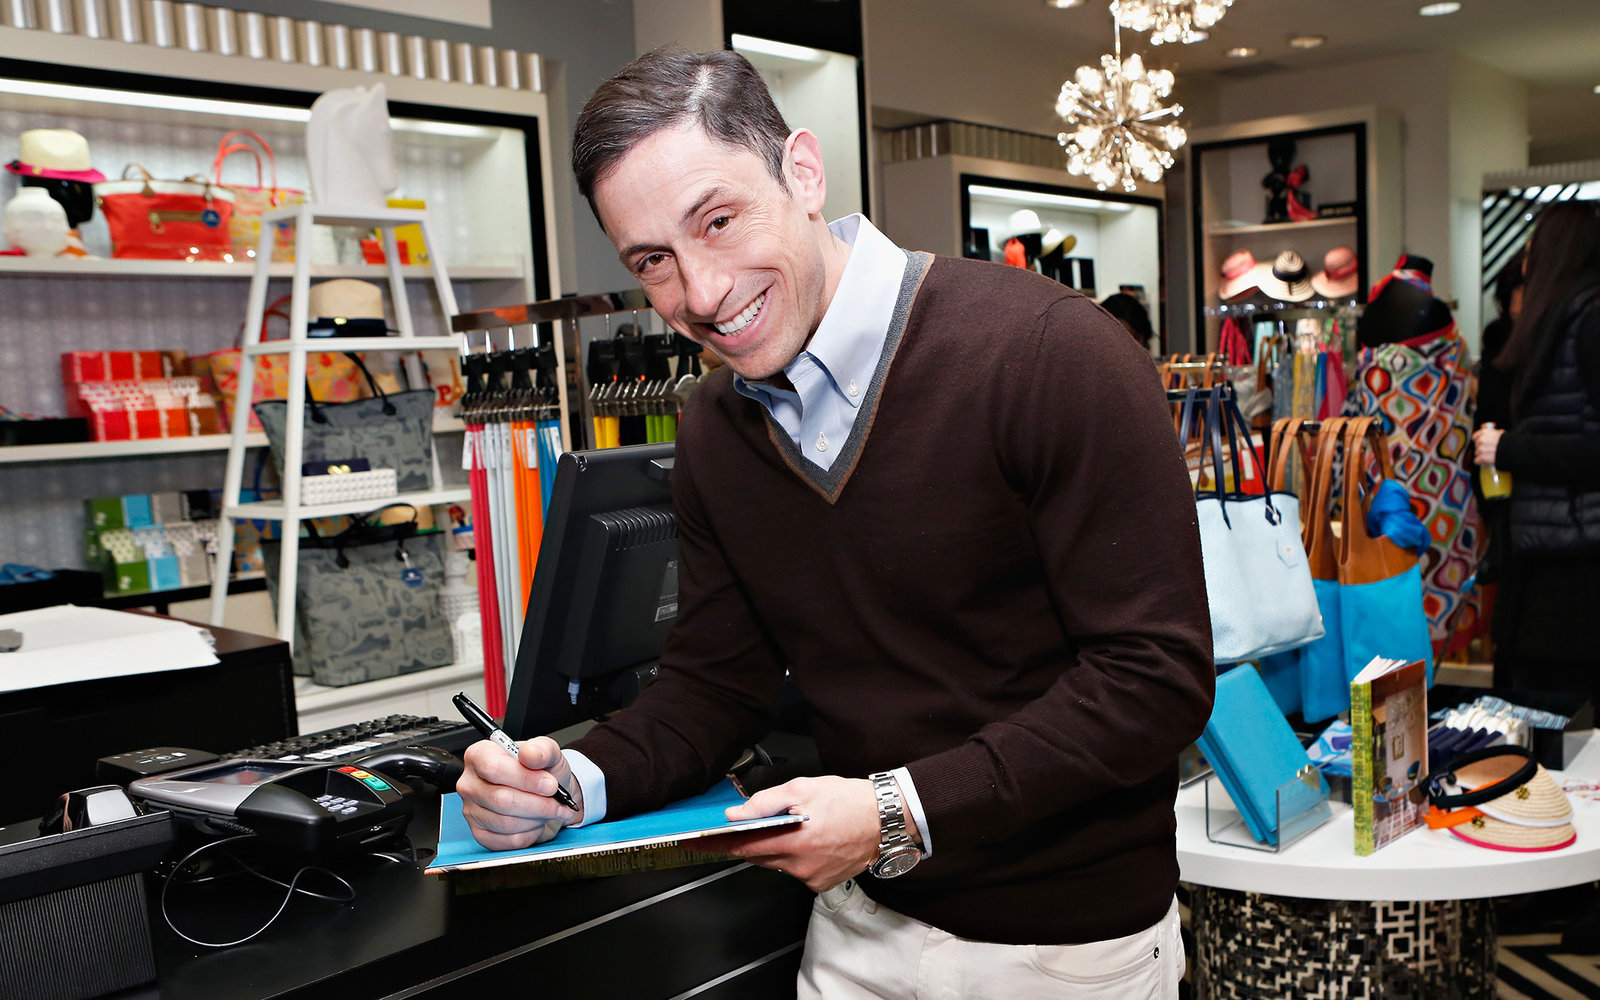 NEW YORK, NY - MARCH 01:  Designer Jonathan Adler attends the Bloomingdale's 59th Street  launch of the Jonathan Adler Accessories Collection at Bloomingdale's 59th Street Store on March 1, 2013 in New York City.  (Photo by Cindy Ord/Getty Images for Bloo